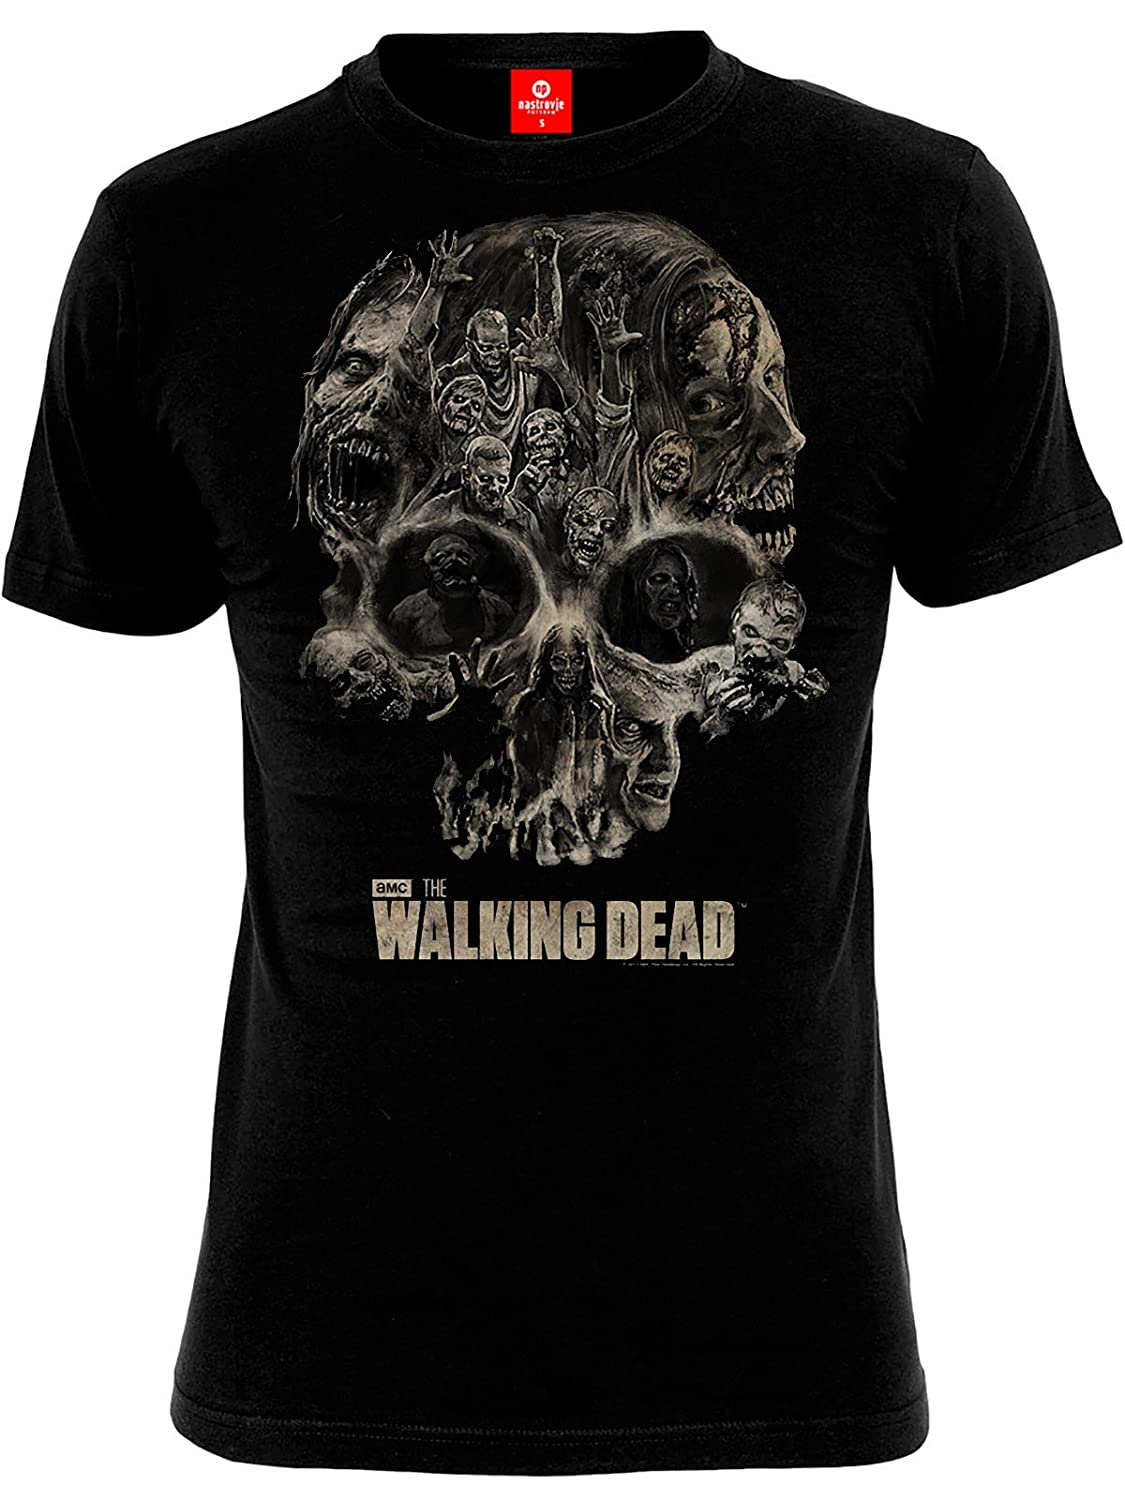 The Walking Dead Skull Camiseta Negro